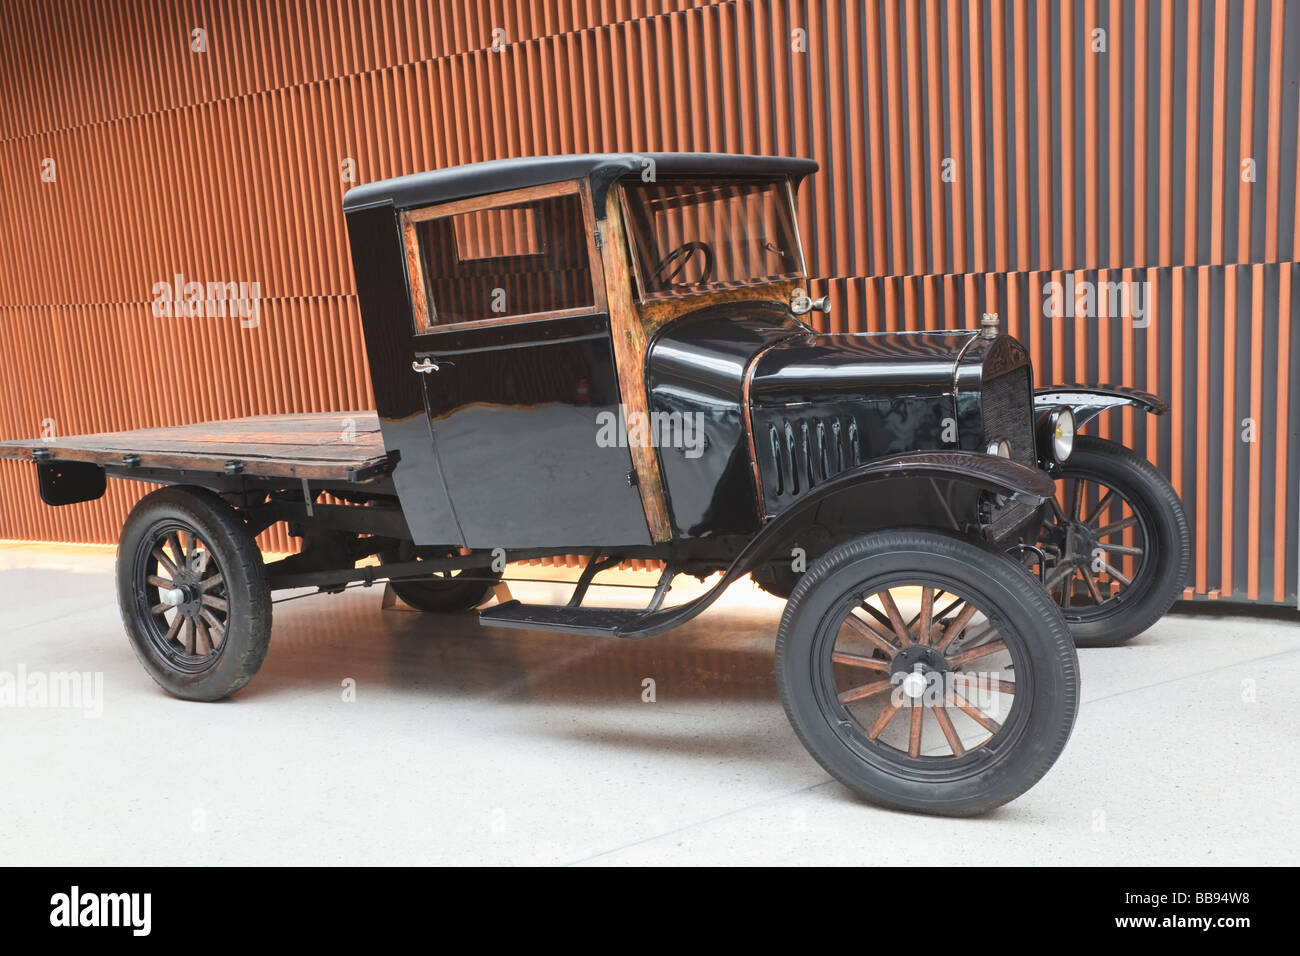 Black Ford Model T Pickup Truck From Circa 1920 Stock Photo Alamy